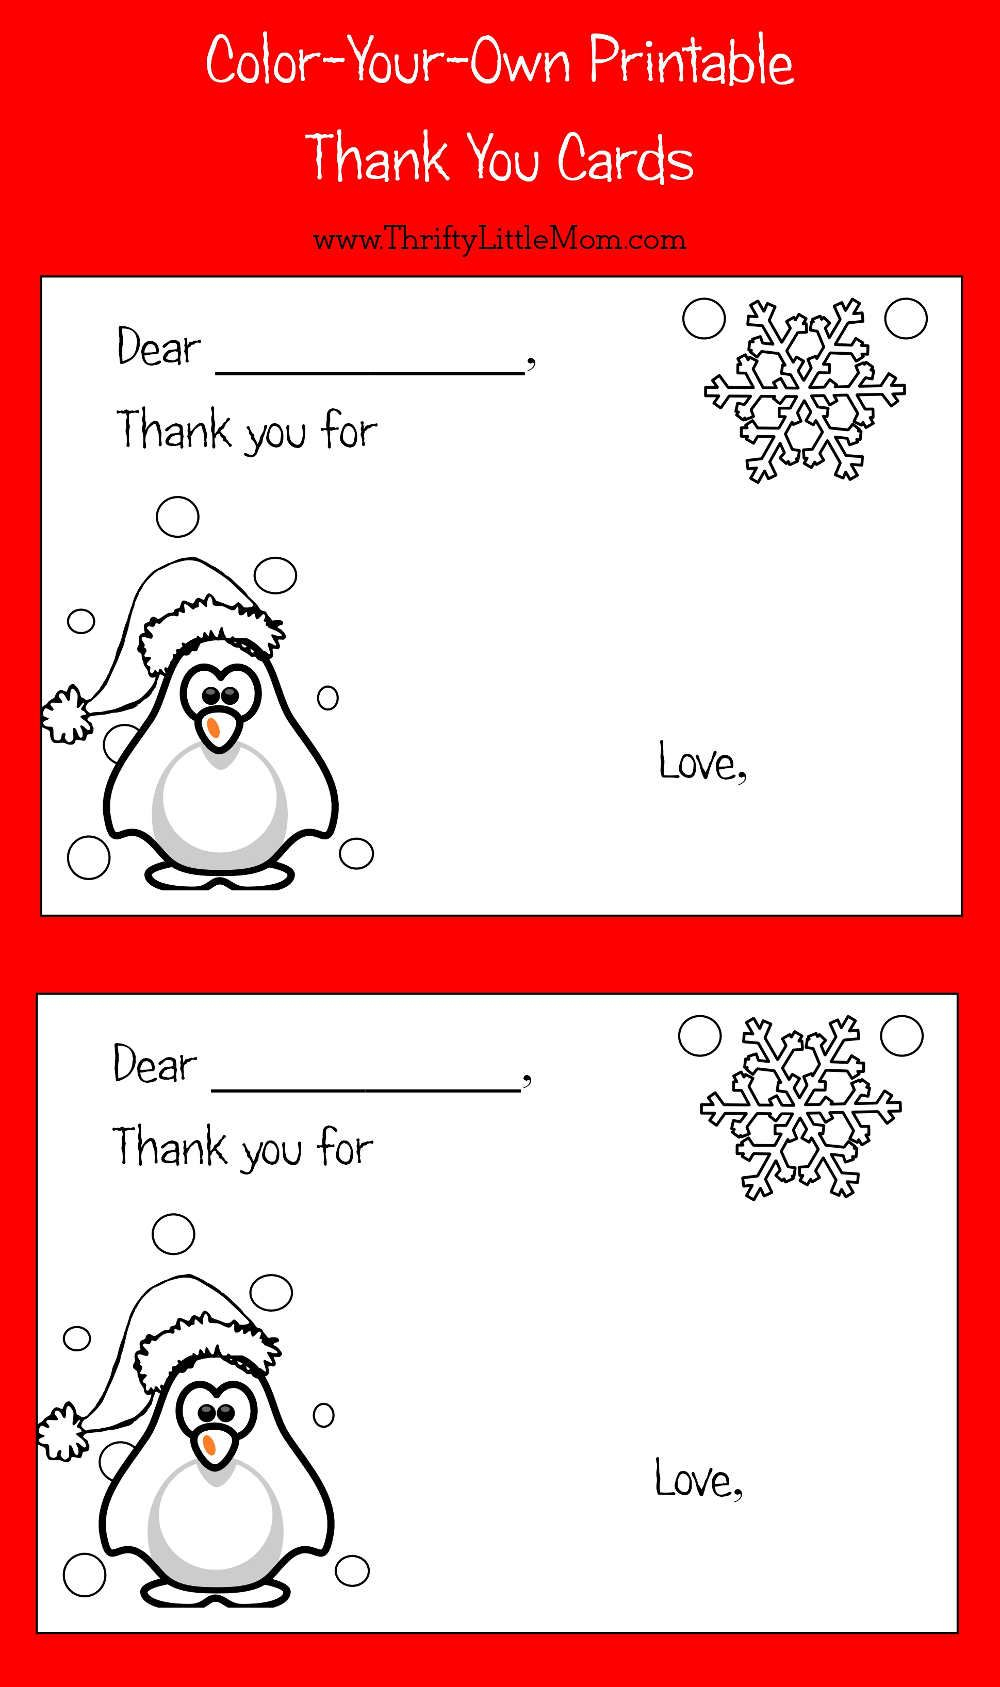 Color-Your-Own Printable Thank You Cards For Kids   Thrifty Thursday - Free Printable Color Your Own Cards